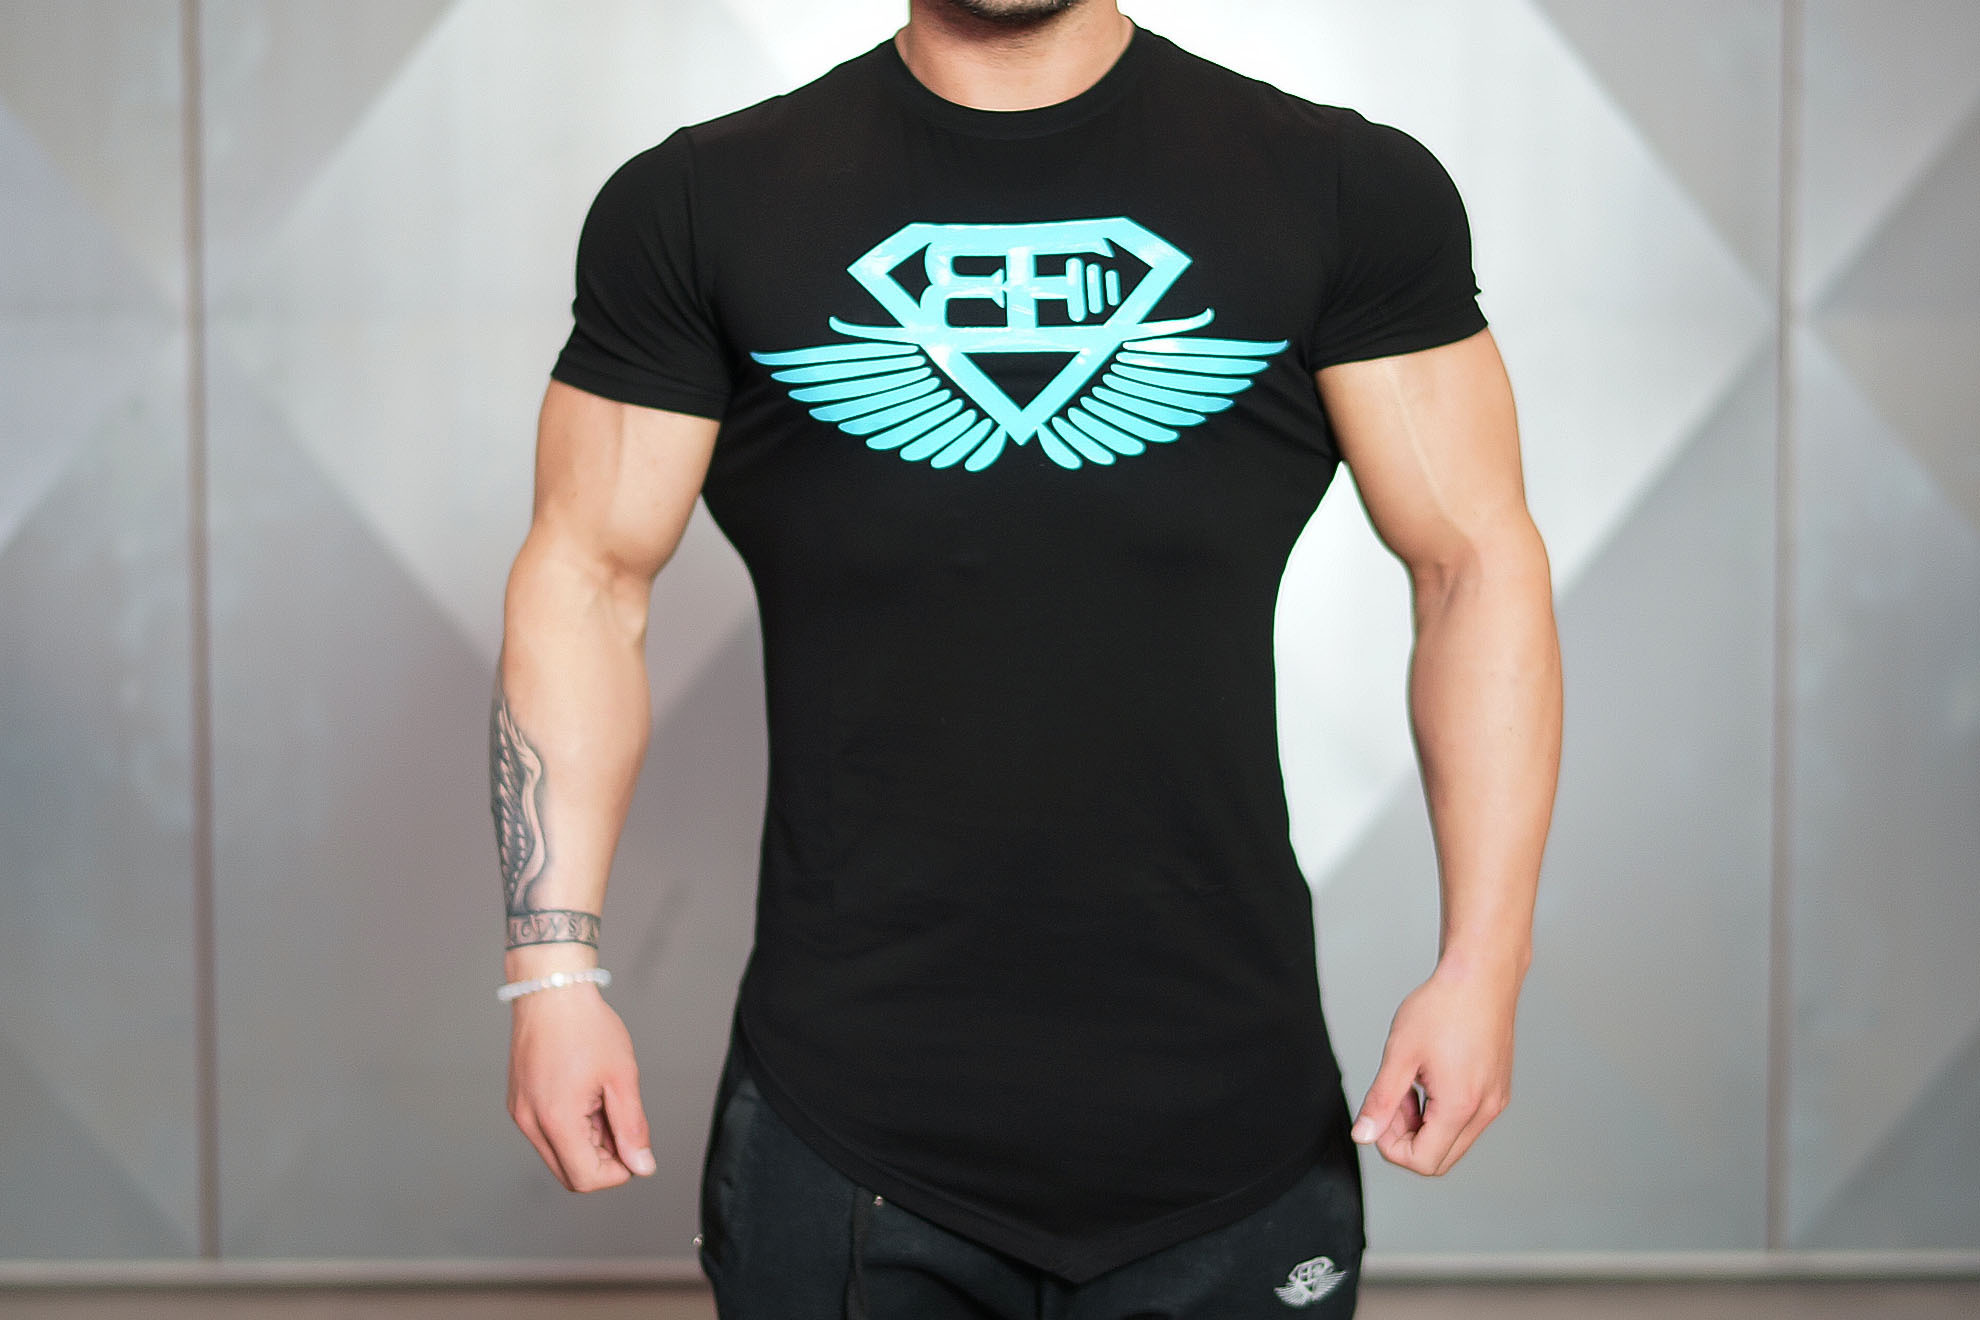 『関税・送料無料』body engineers Engineered Life Tシャツ